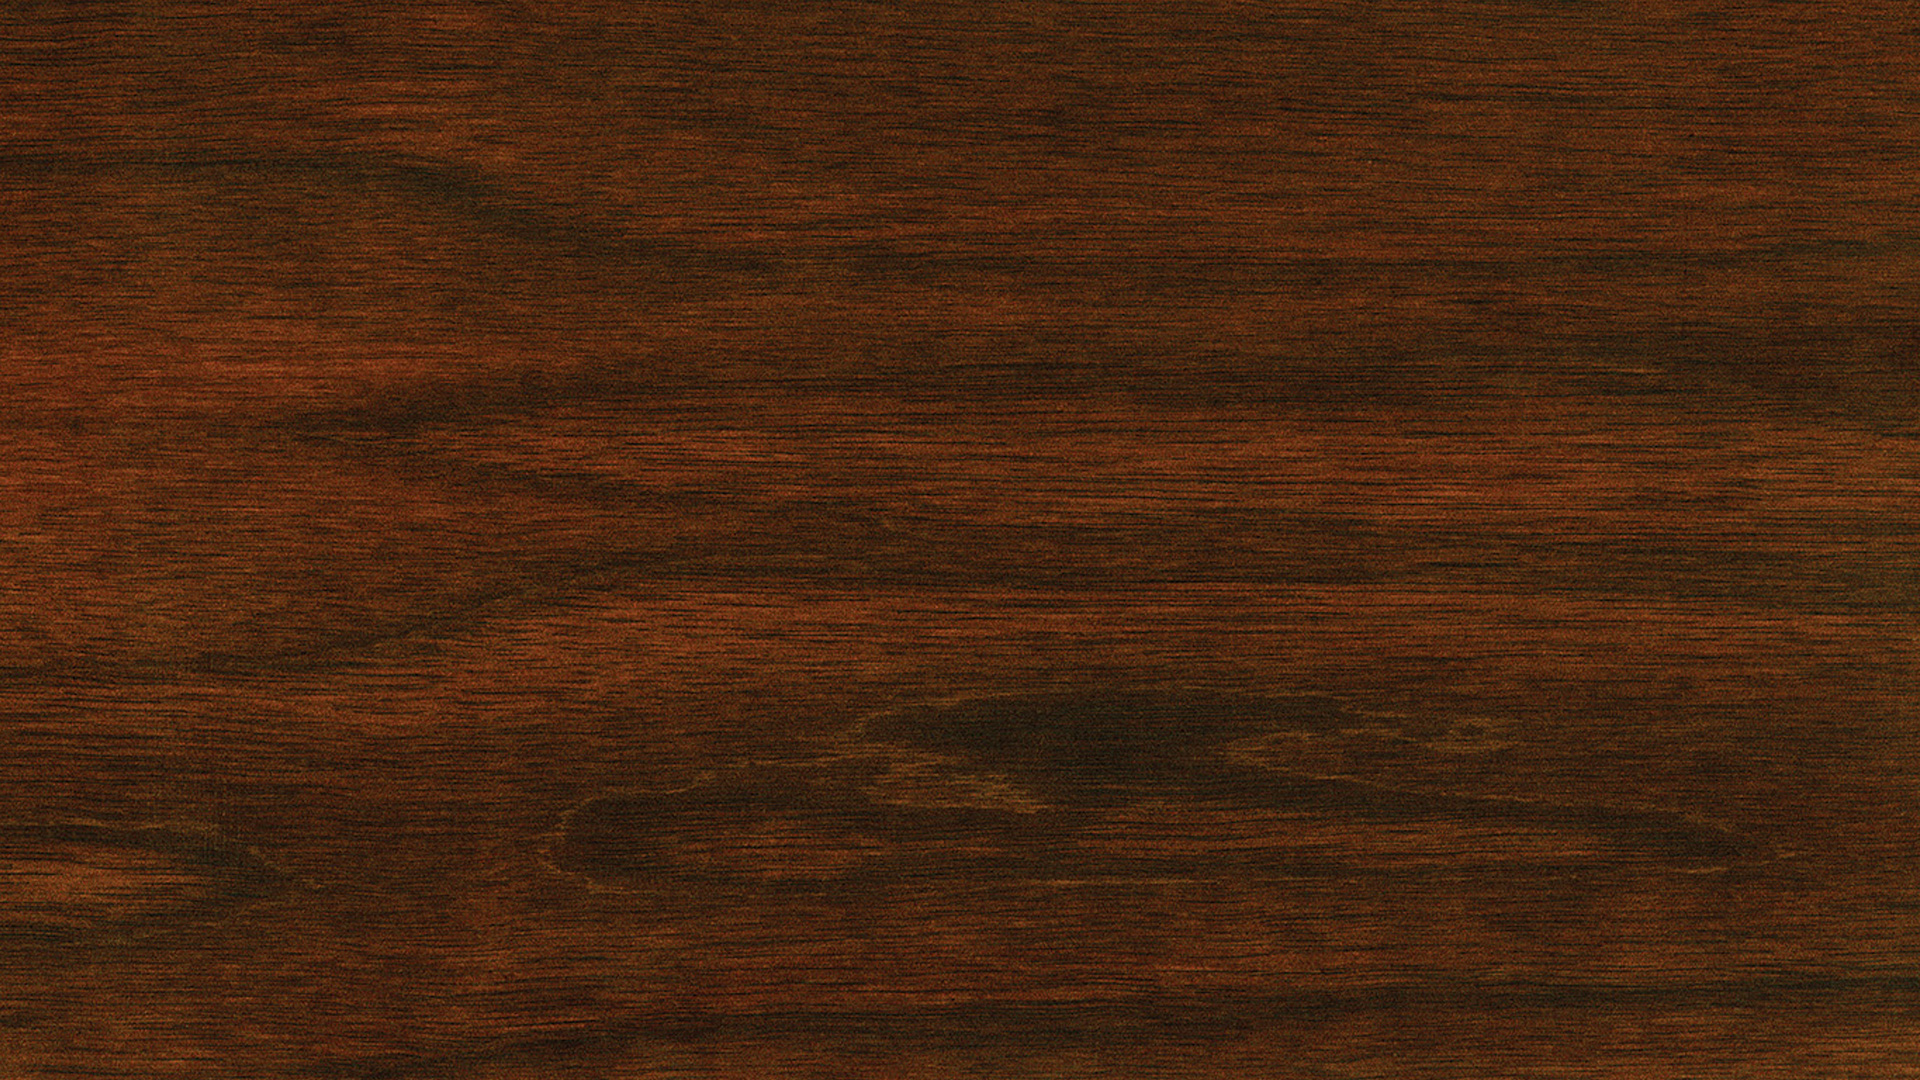 http://lccabinetry.com/images/woods/full-image/walnut.jpg